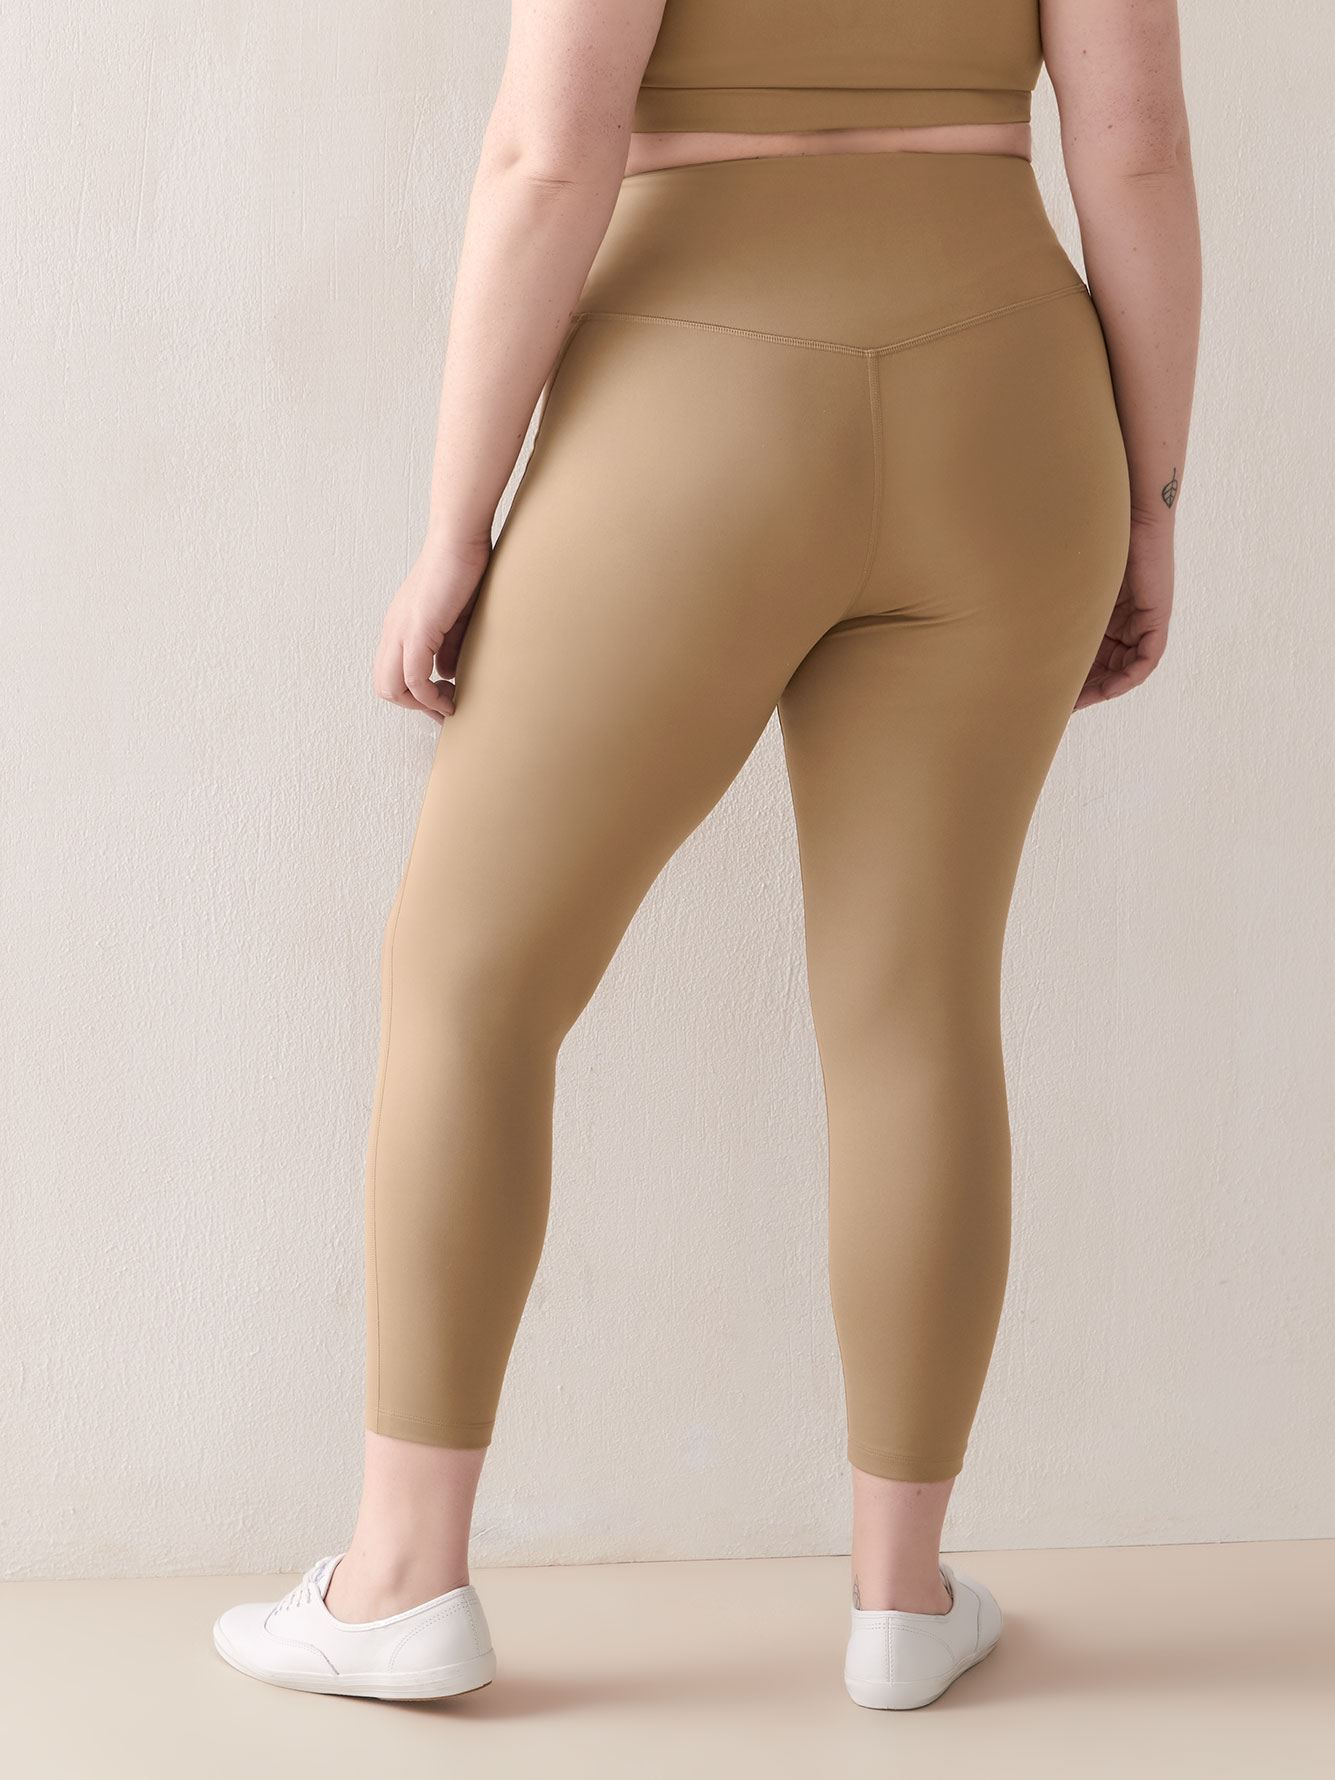 Fashion High-Rise 7/8 Compression Legging - Girlfriend Collective